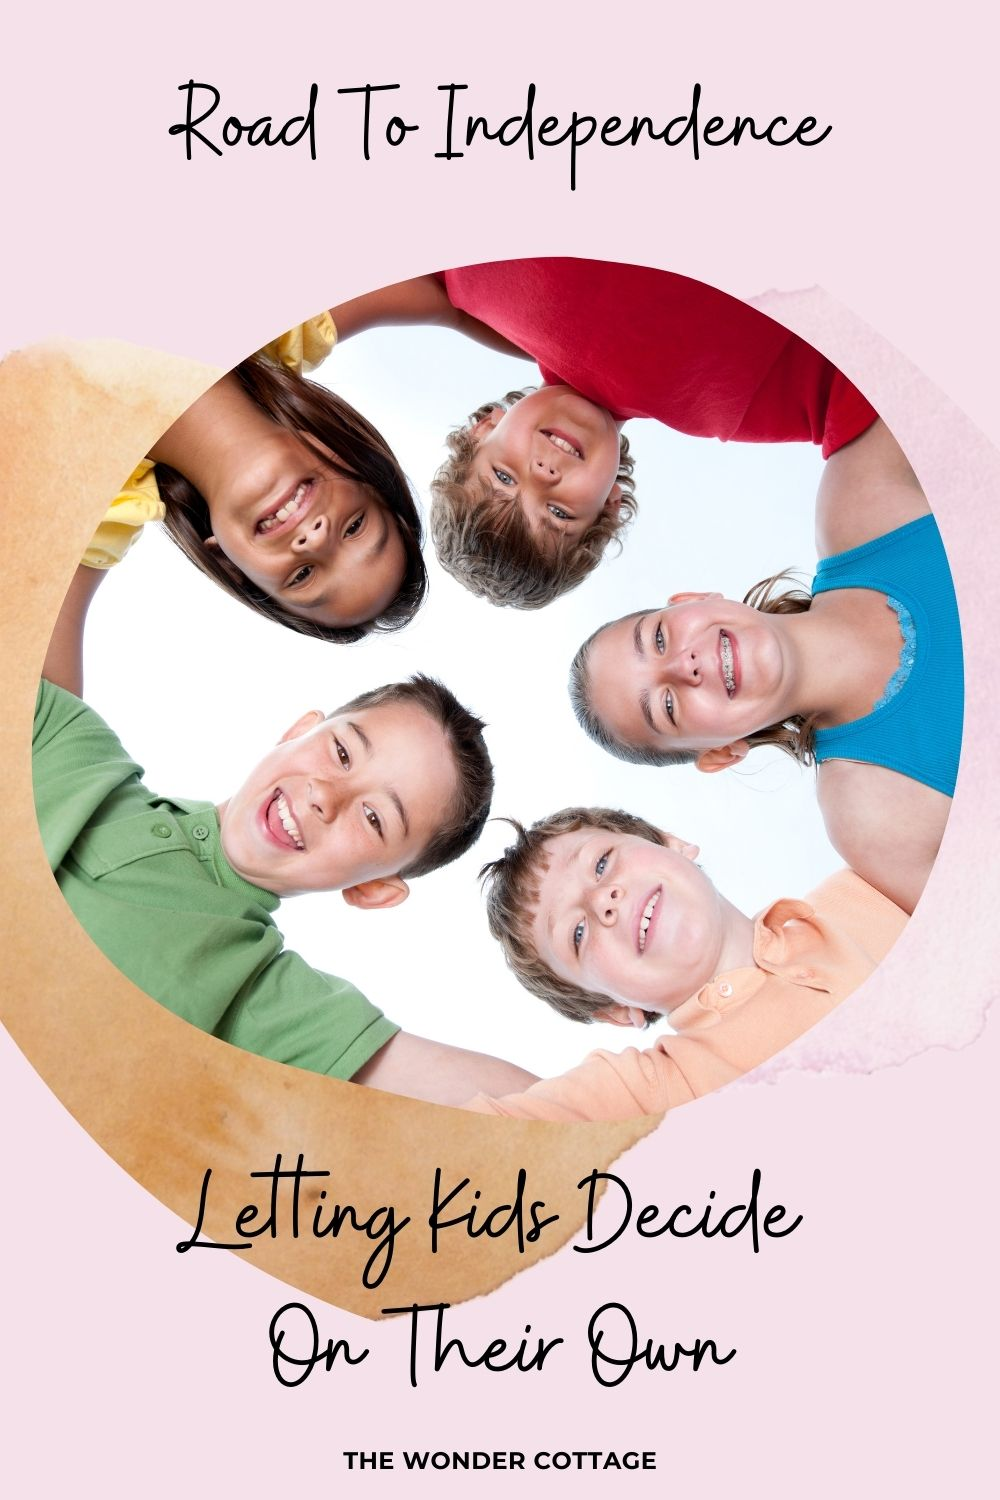 Letting kids decide on their own